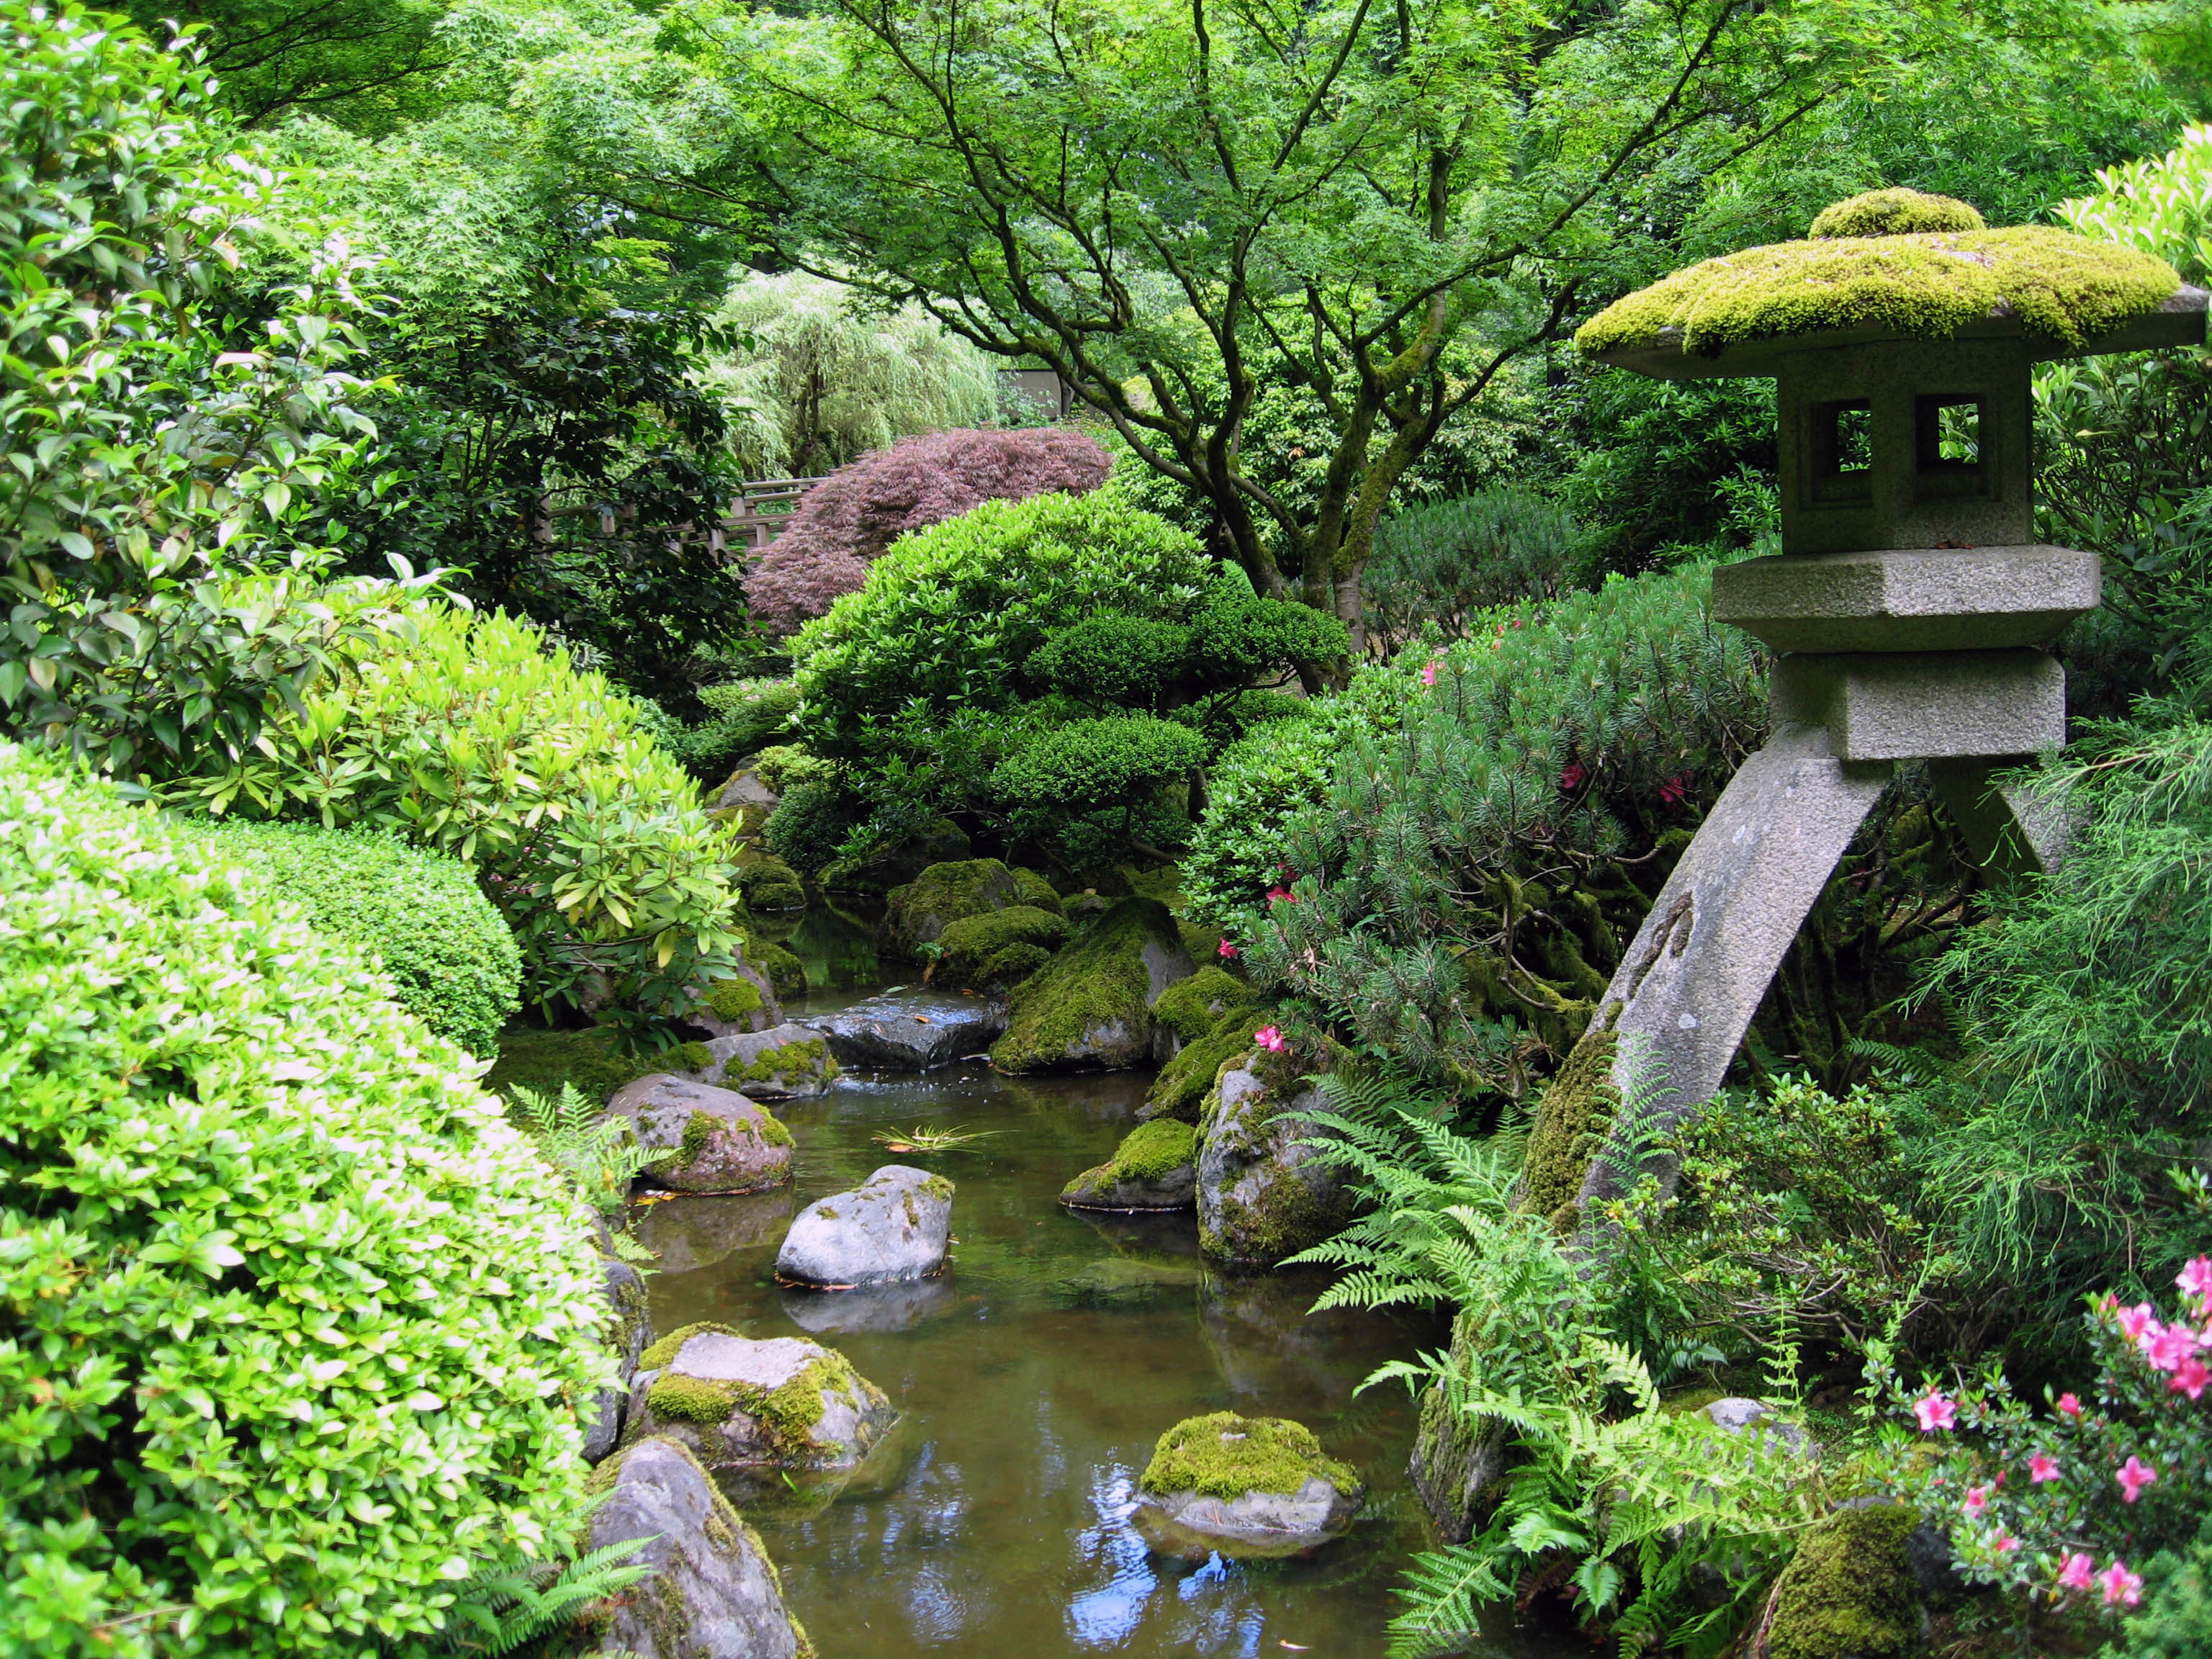 Organic gardening ideas for the green garden epsosde for Japanese garden ideas